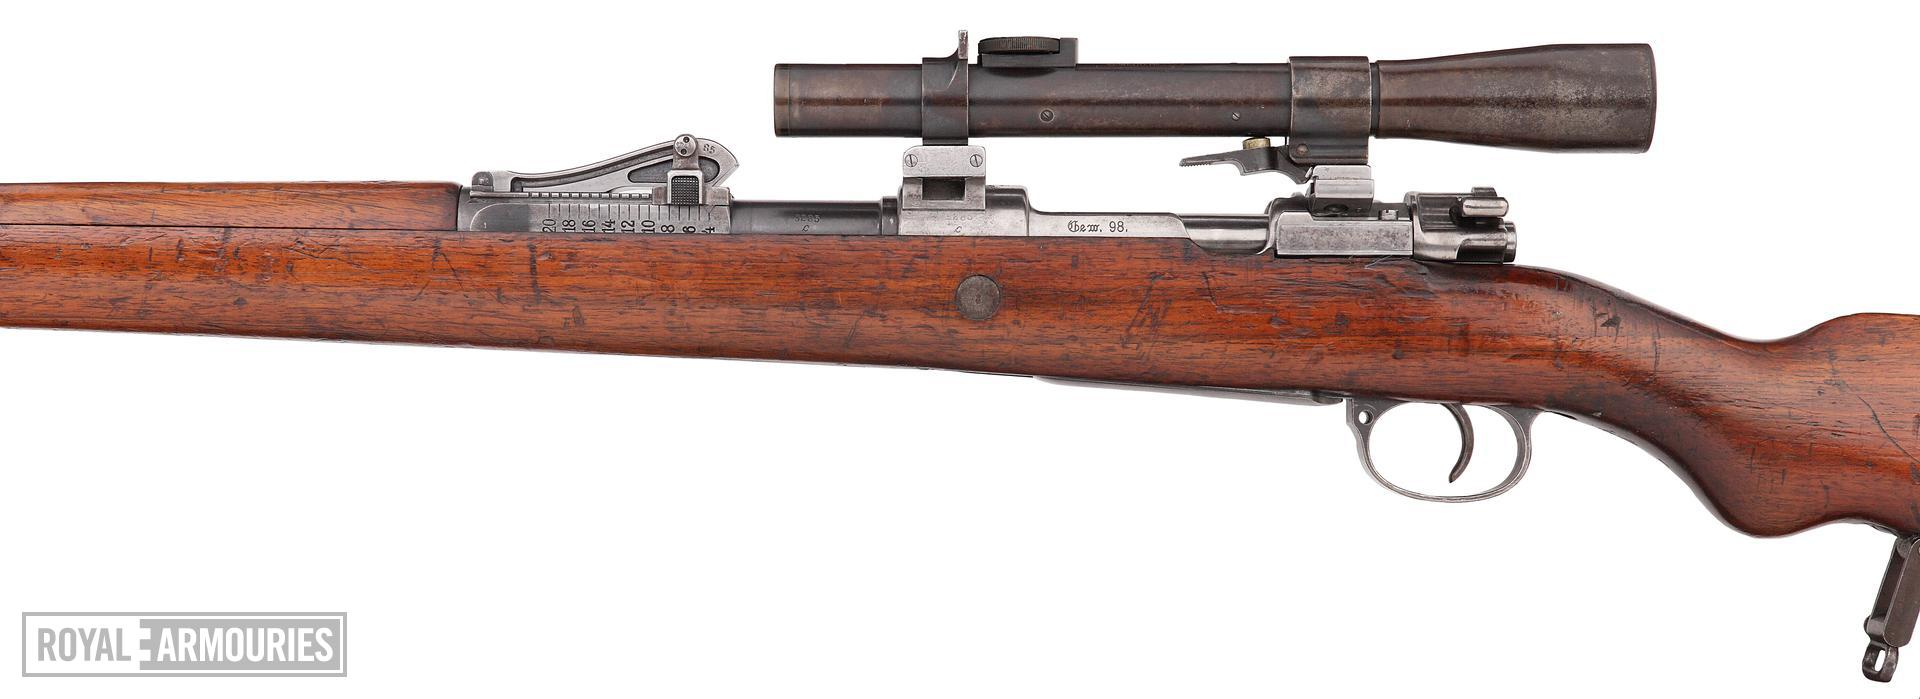 Centrefire bolt-action rifle - Mauser Gewehr 98 (G98) rifle fitted with Goerz scope (about 1915).jpg